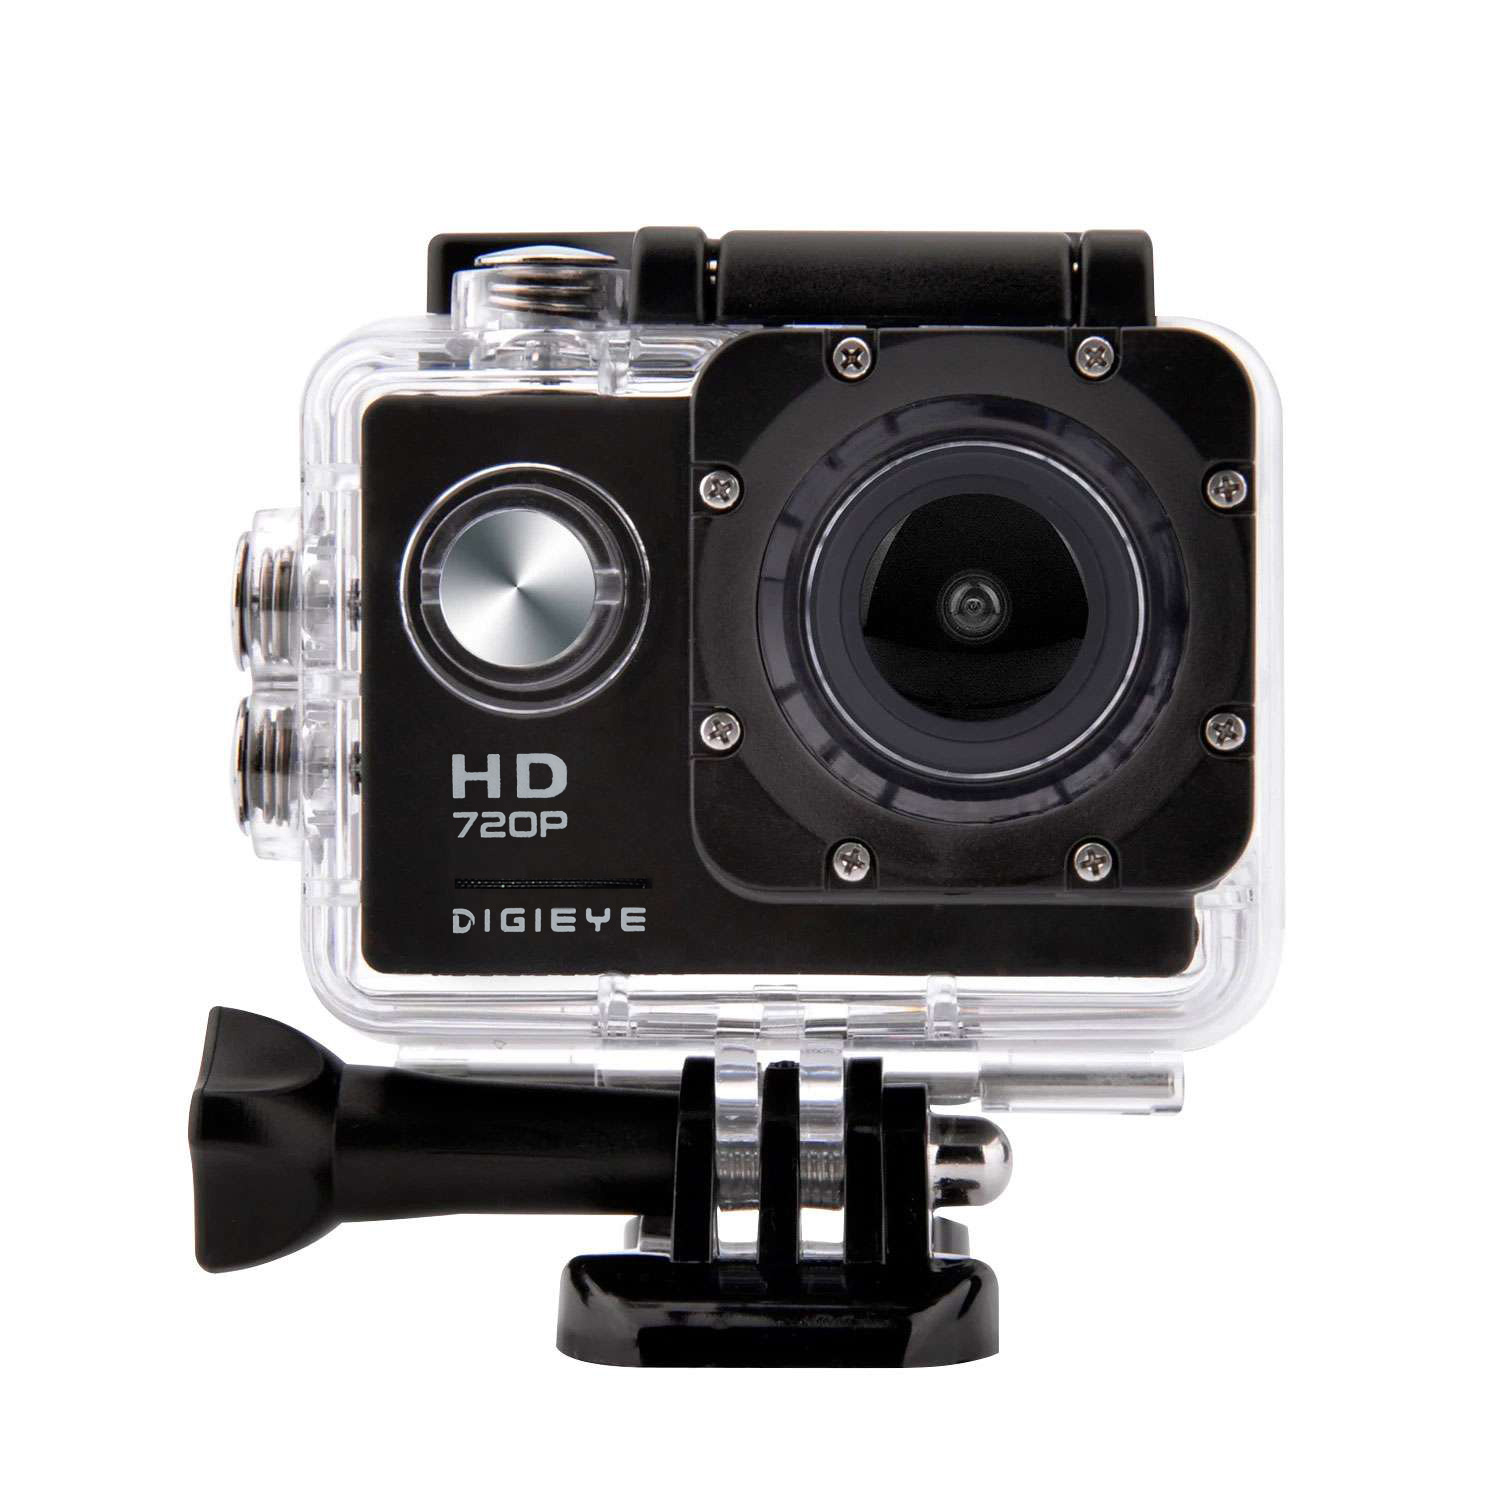 Digieye 720P Waterproof HD Action Camera Kit with 2